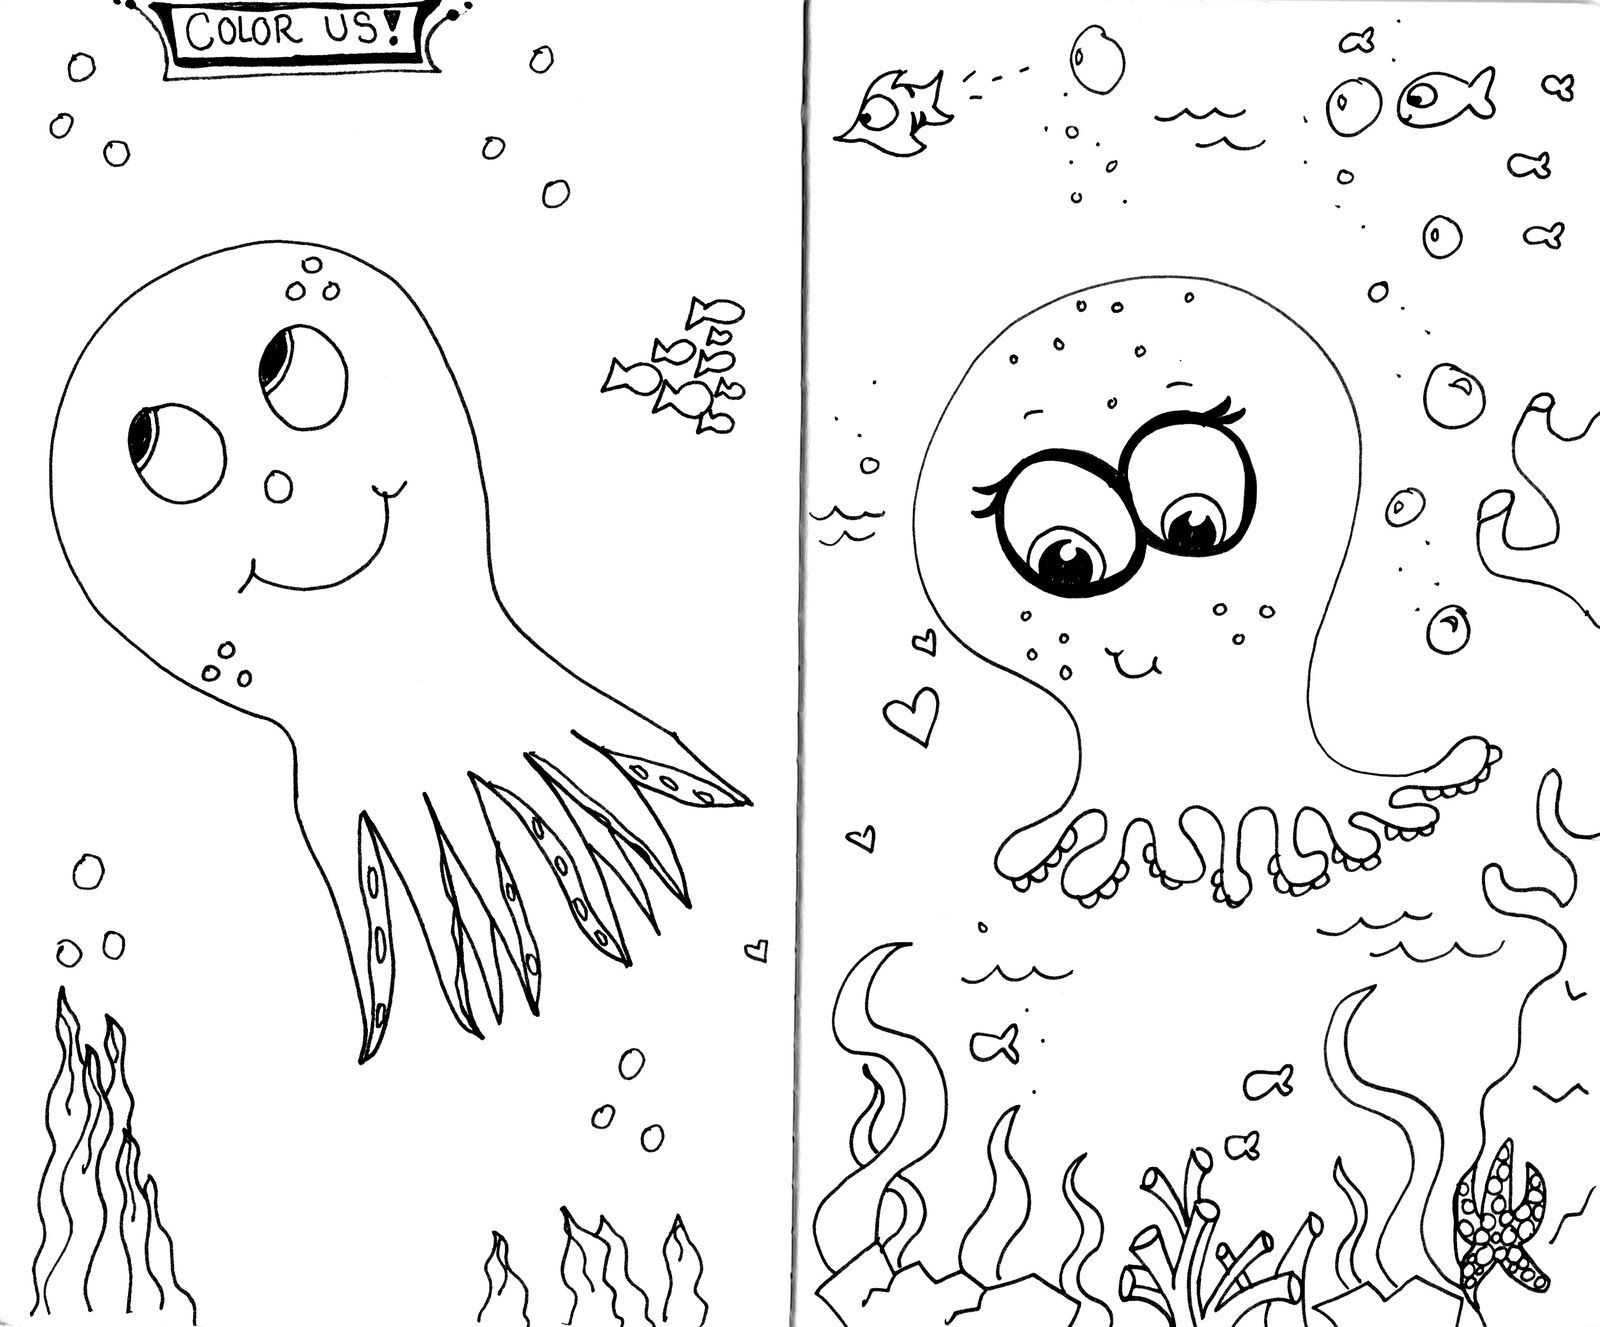 Octopus coloring page andrew left and danielle right